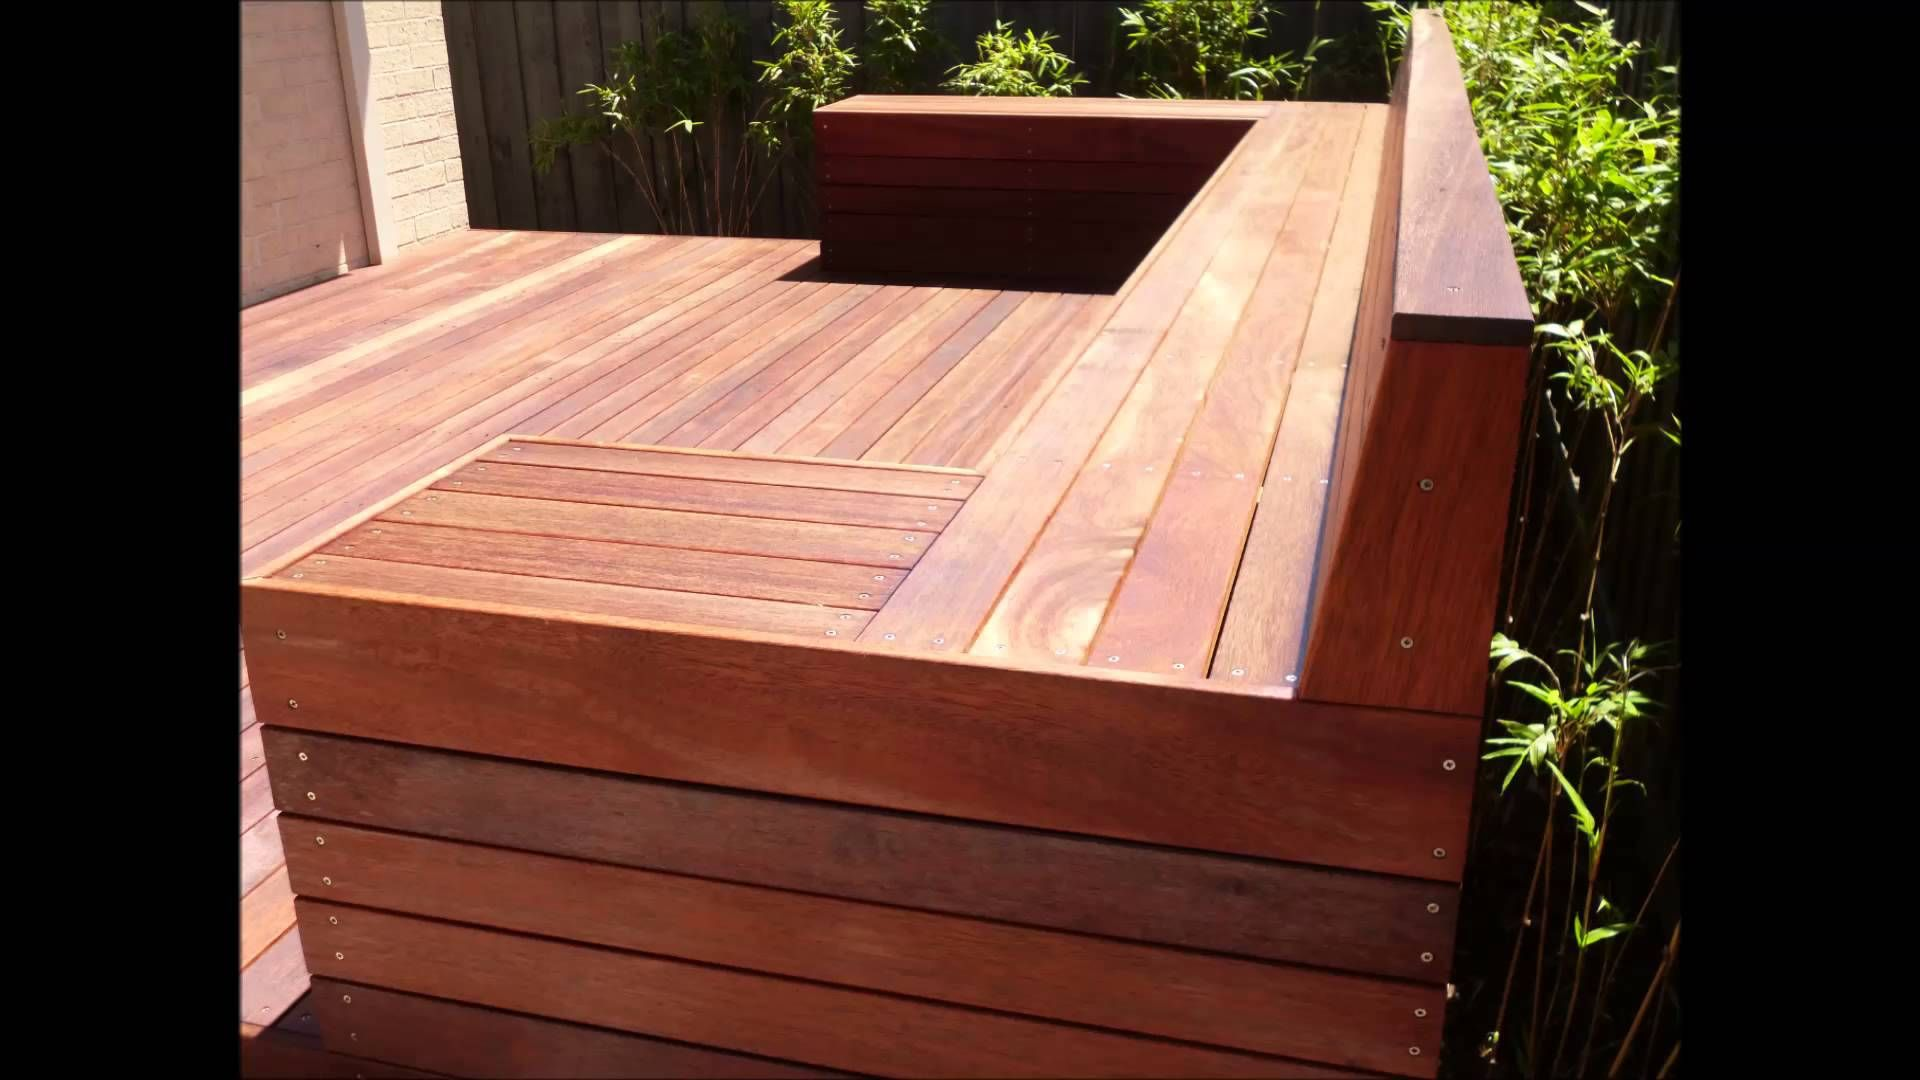 How To Build A Timber Deck With A Bench Seat Ddc Timber Deck Deck Bench Wooden Bench Outdoor